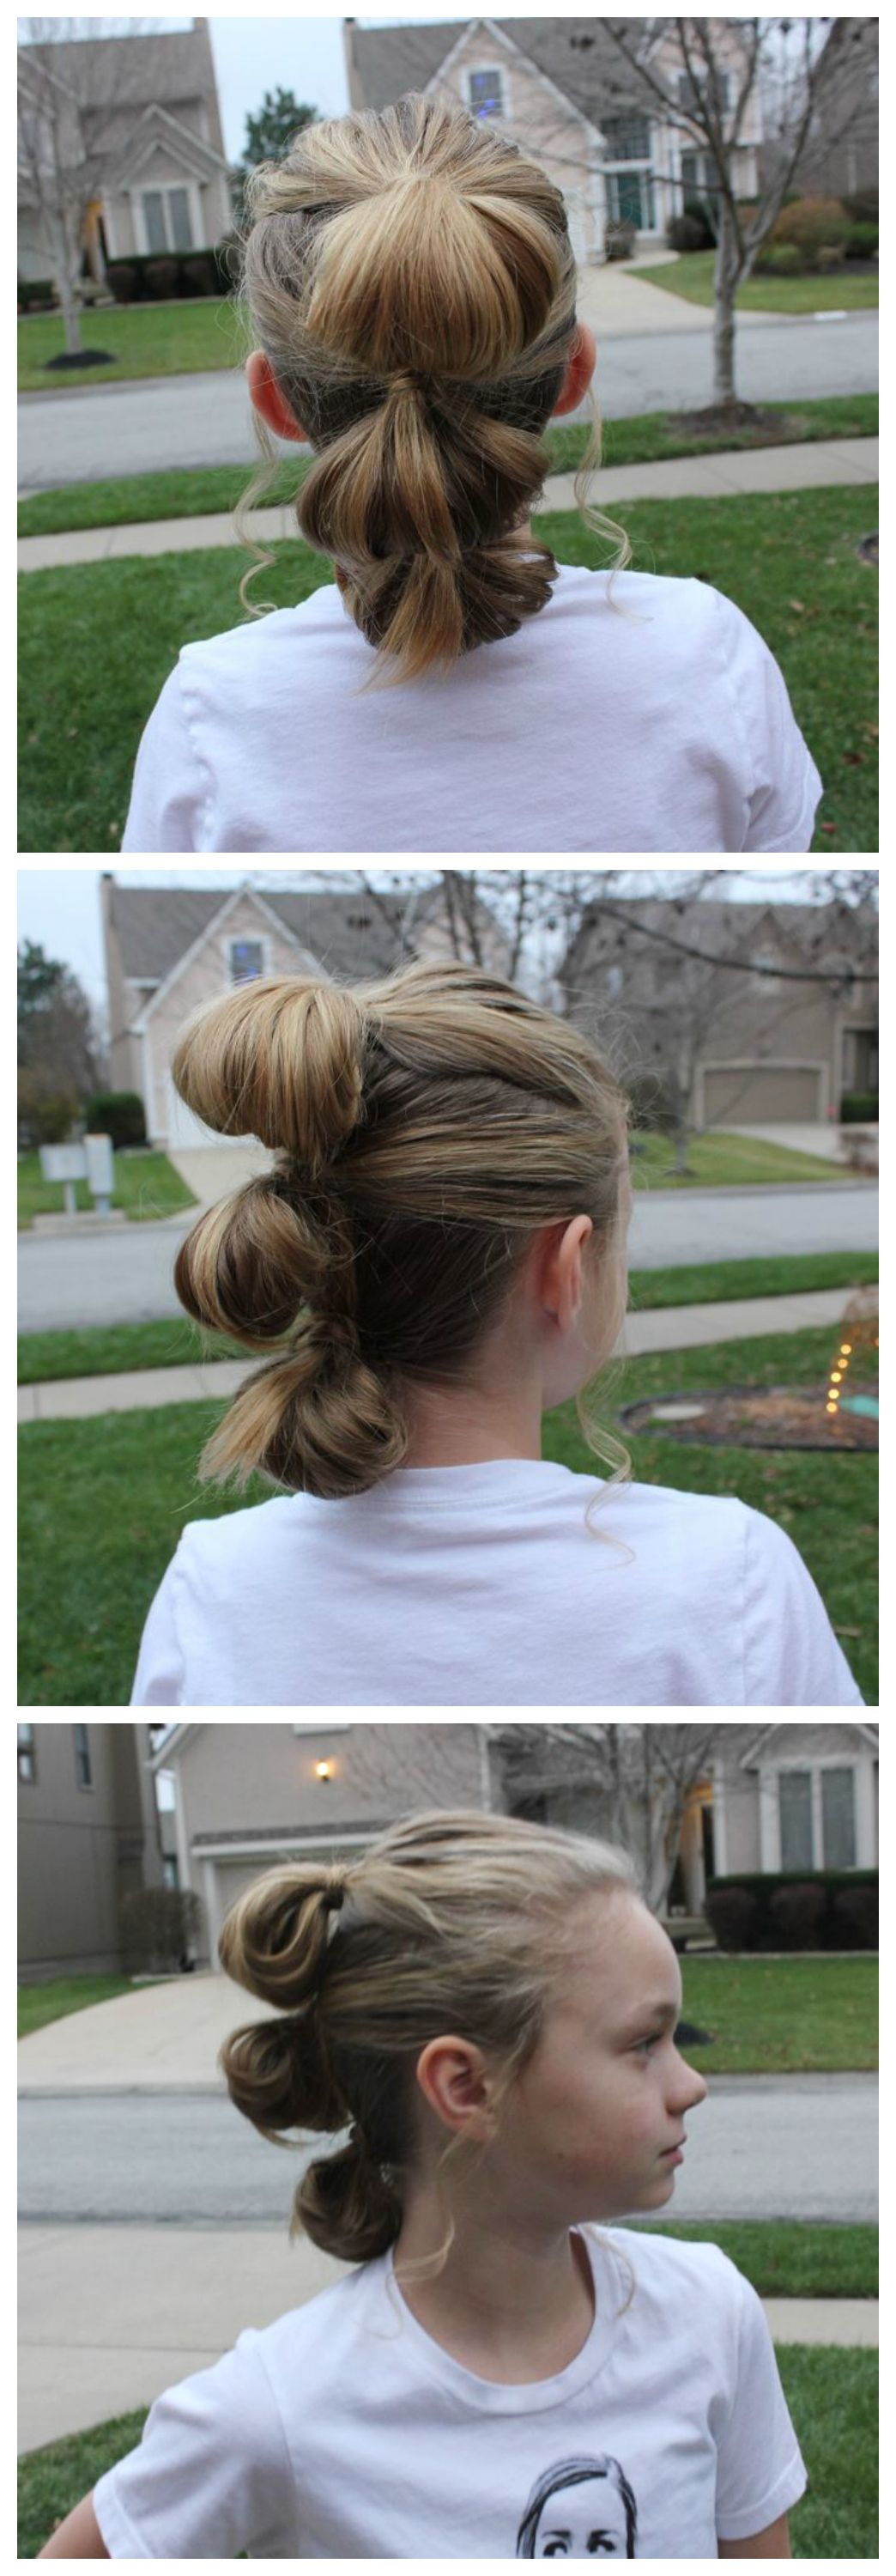 Starwars Rey Hair Hairstyles Pinterest Star Wars Party Star